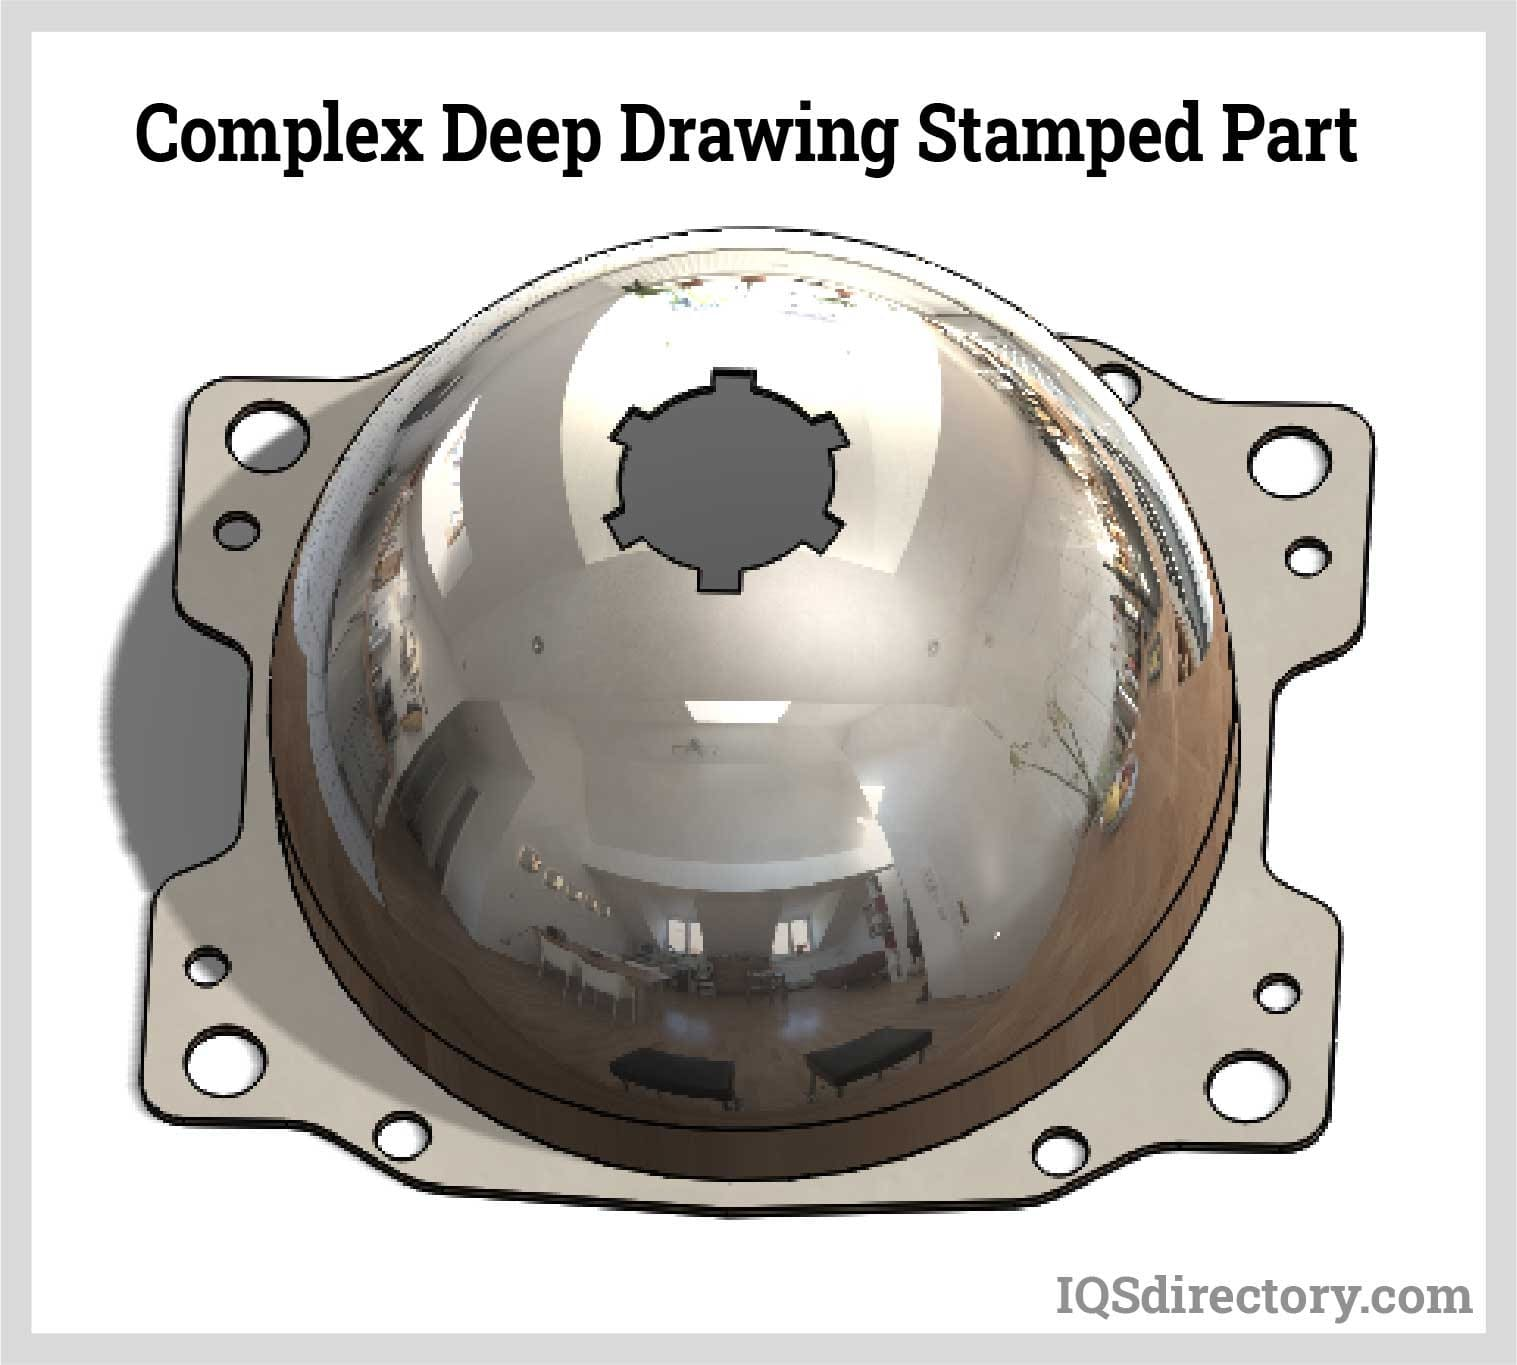 Complex Deep Drawing Stamped Part